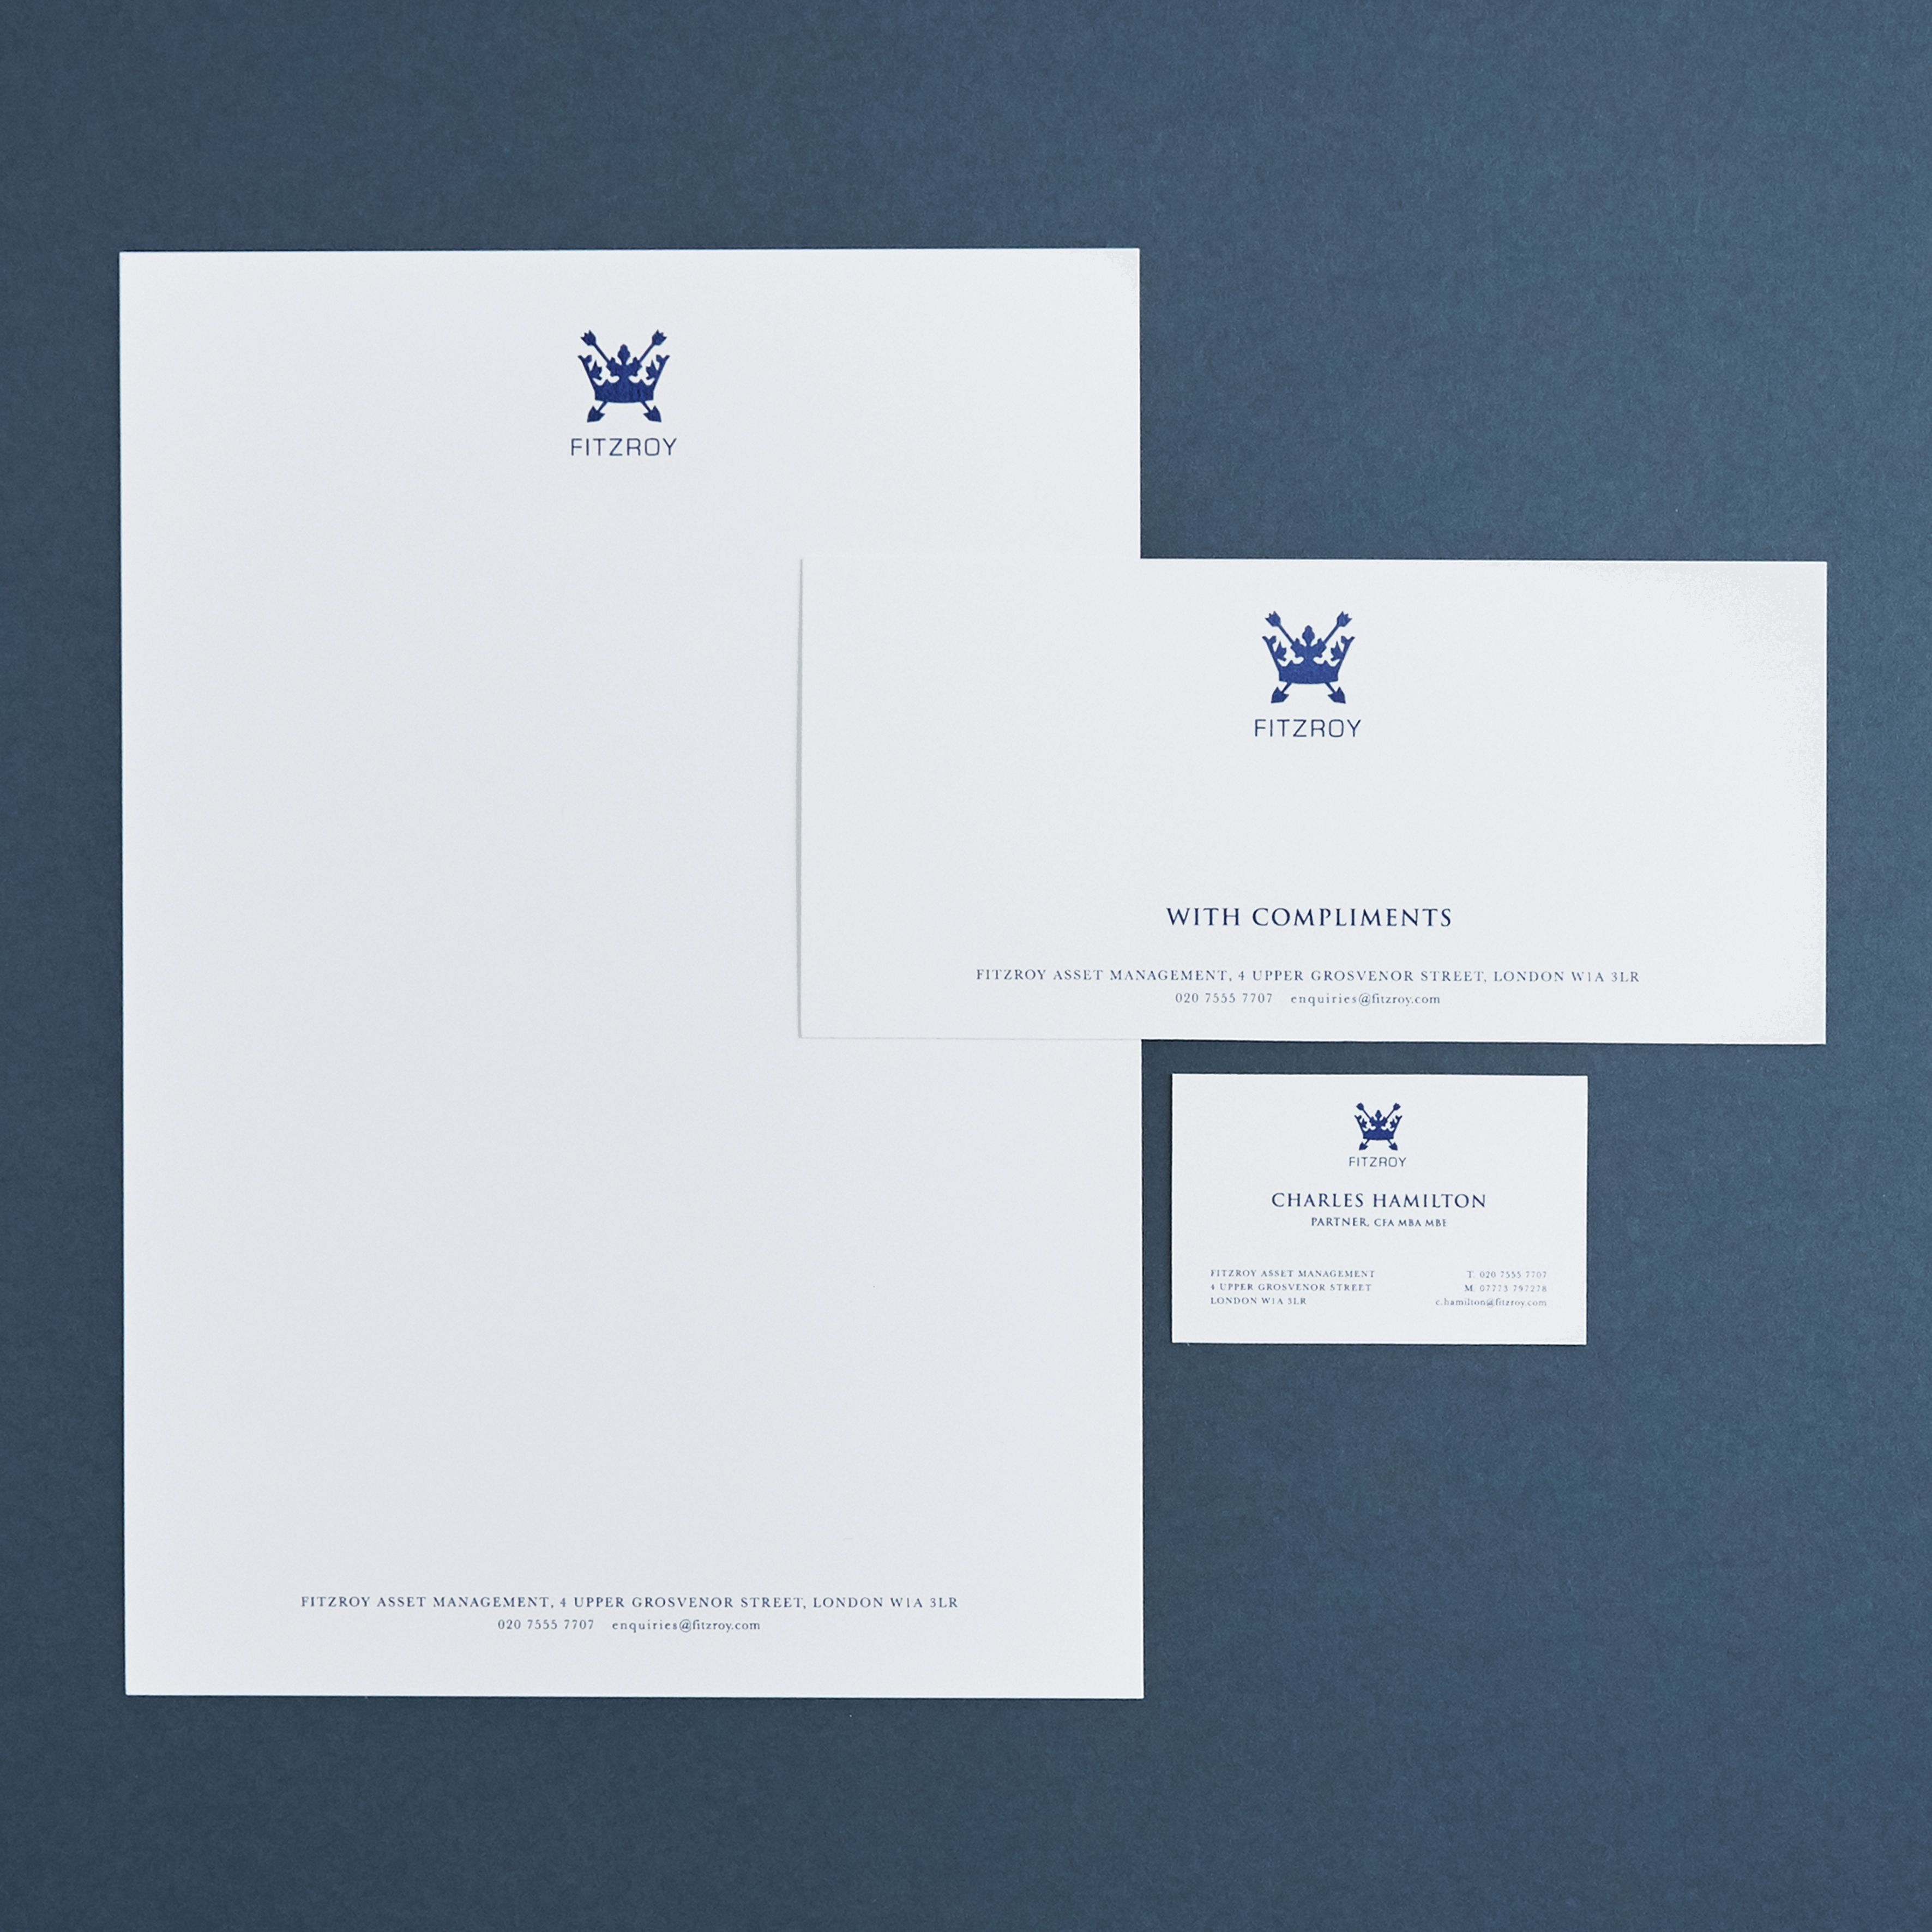 Harmsworth Fine Stationerybusiness Cards Letterheads And With Compliments Slips Business Stationery Compliment Cards Stationery Set